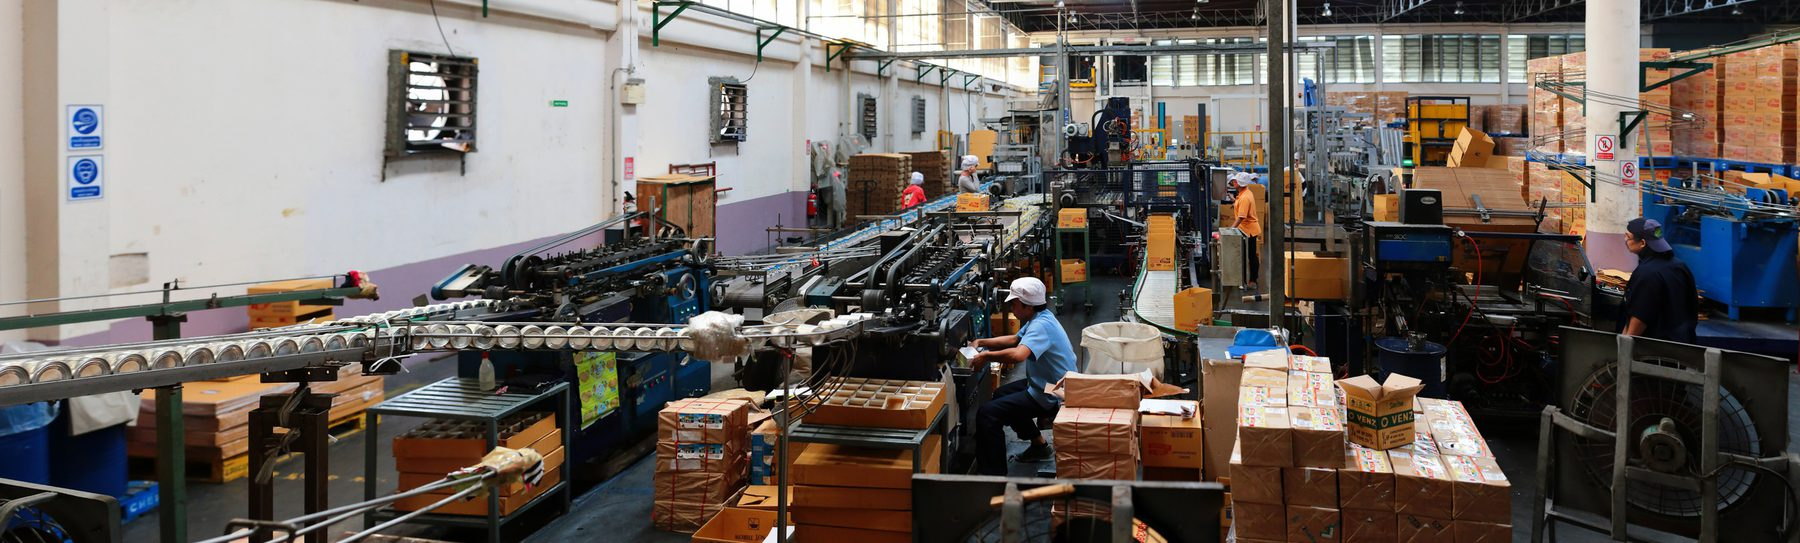 Manufacturing and Production  (Sector Header: Factory Production Line)